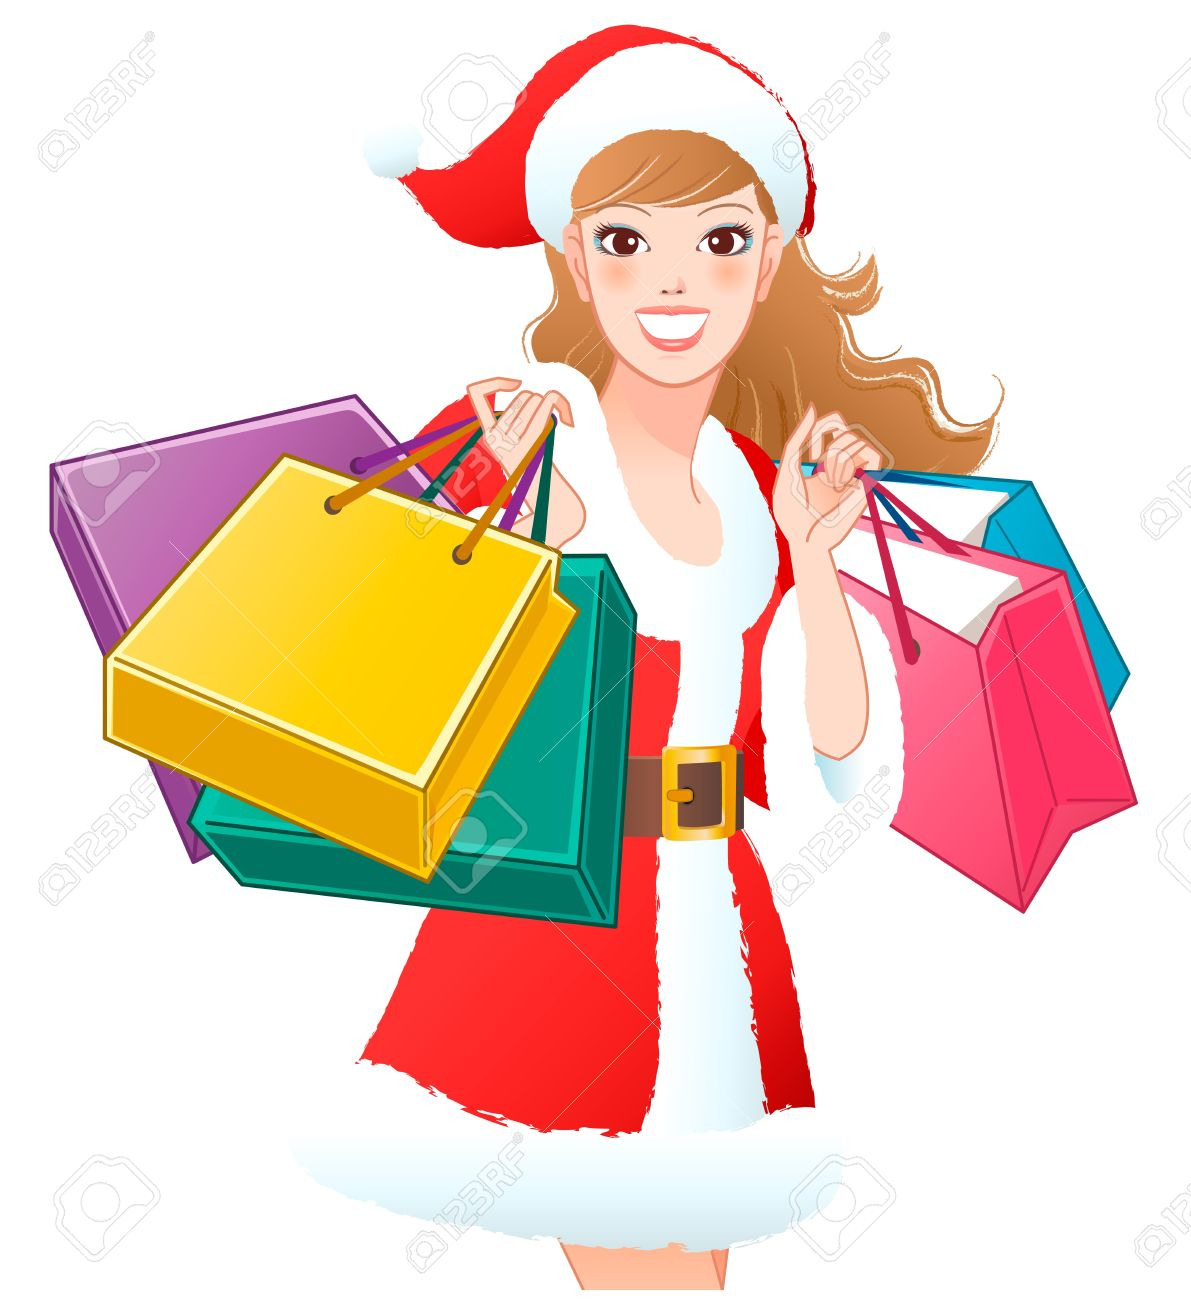 Close Up Santa Girl Shopping Christmas Gifts Cropped White Background Royalty Free Cliparts Vectors And Stock Illustration Image 16248005